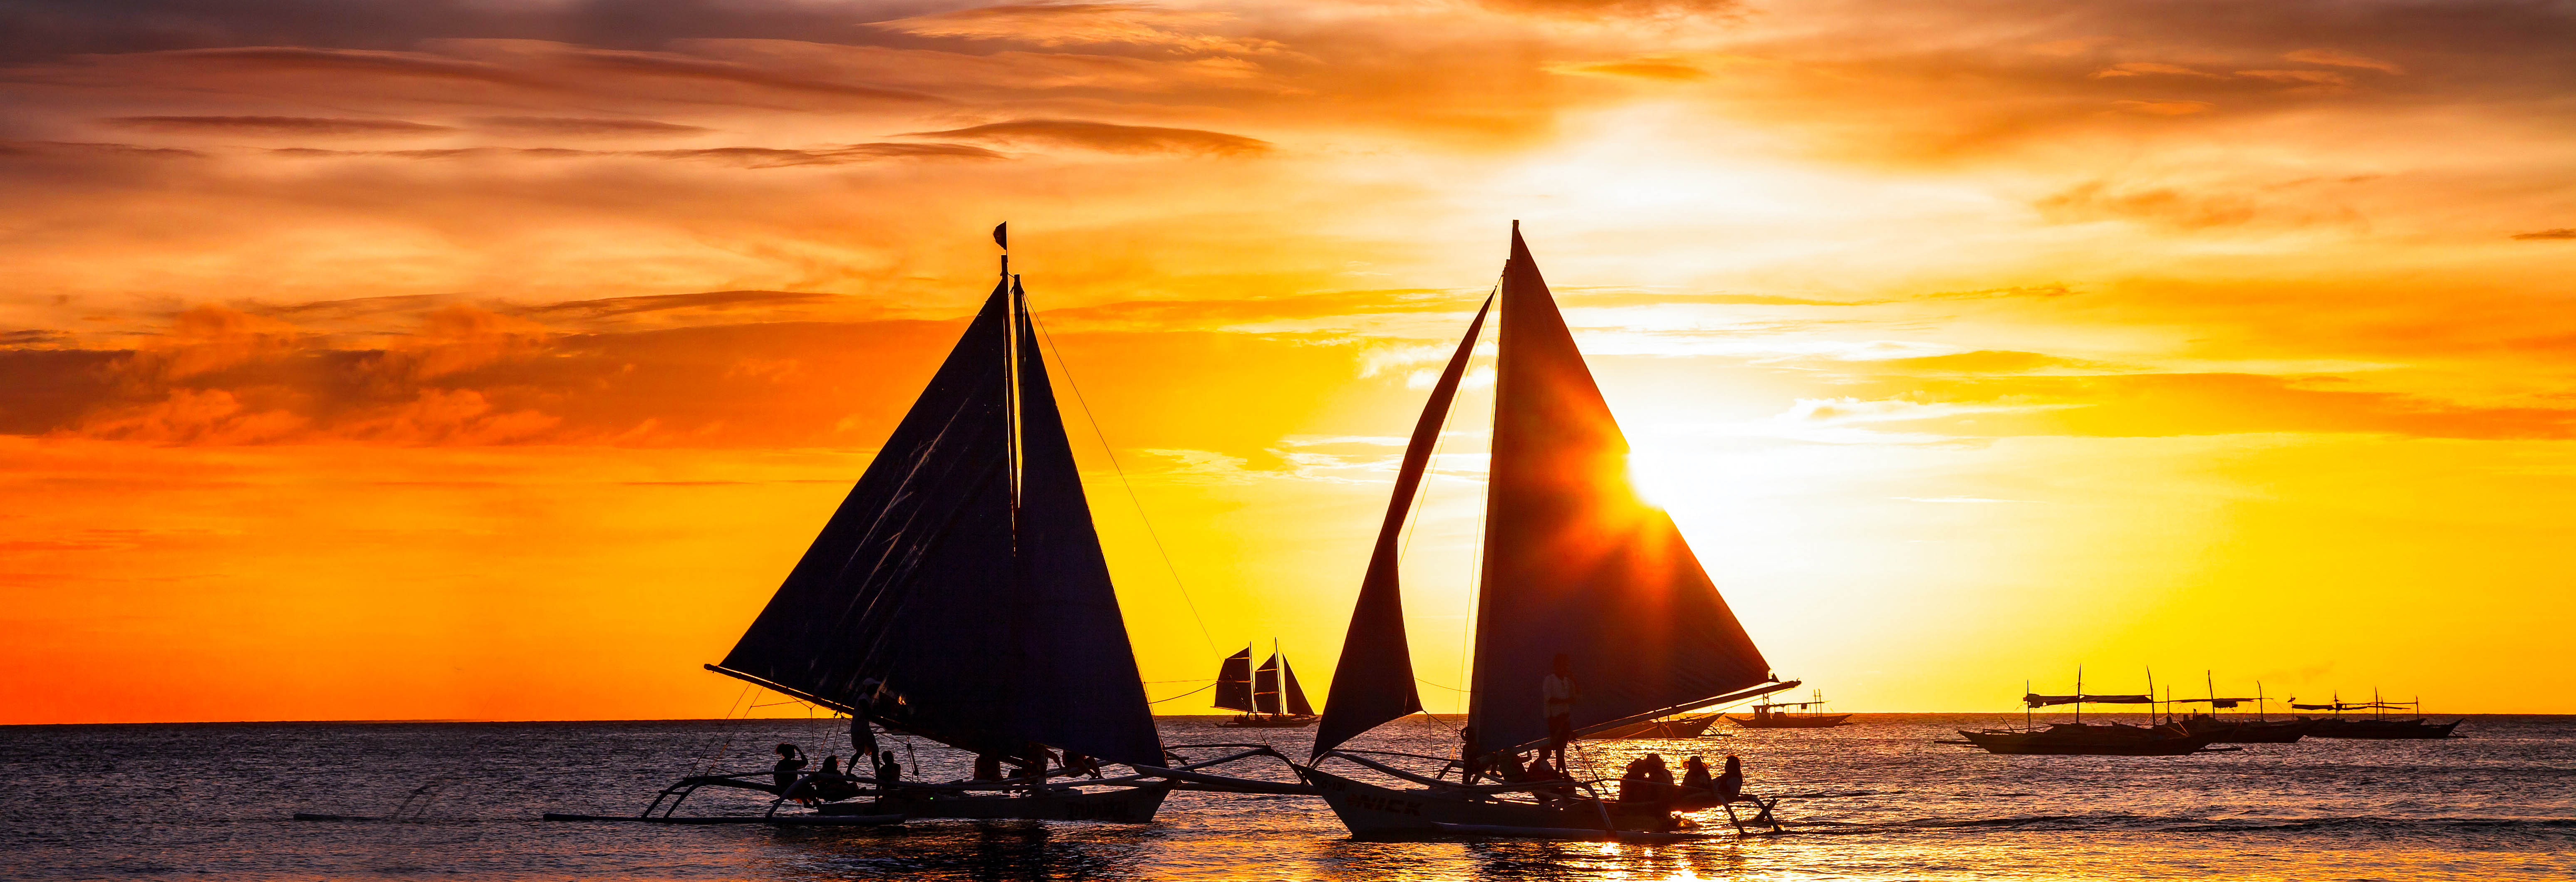 Philippines Travel: COVID-19 Information + Destinations Open for Tourism